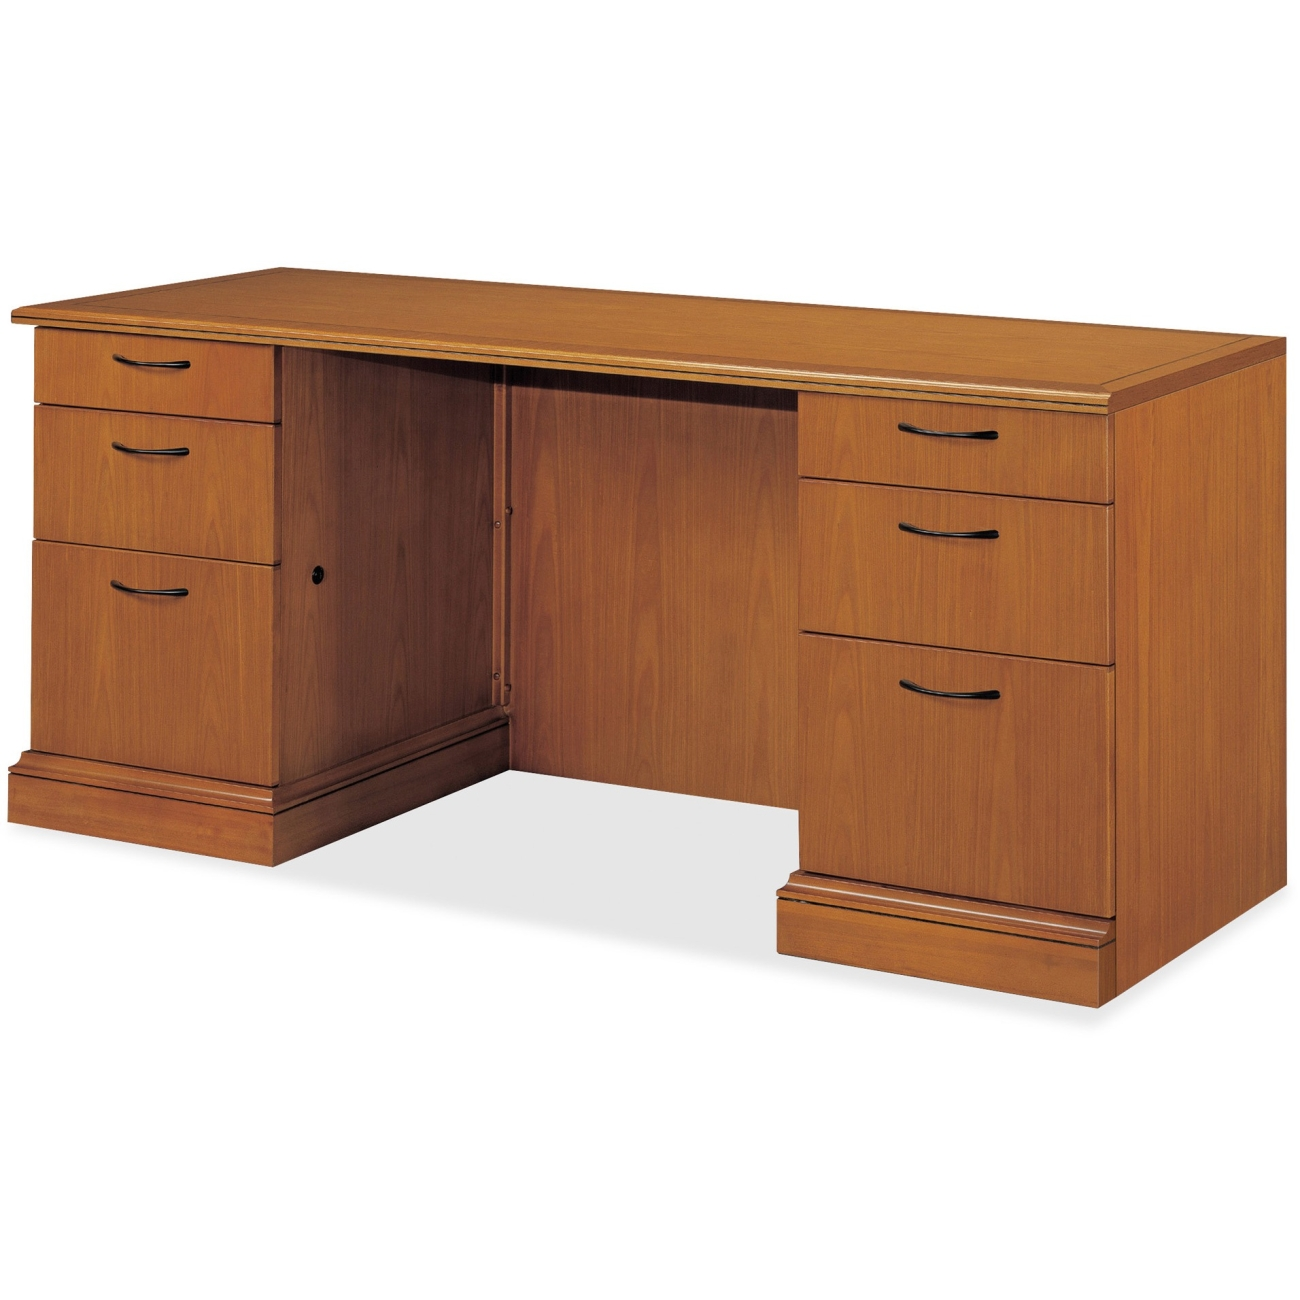 dmi office furniture 713021 dmi713021 7130 belmont credenza dmi office